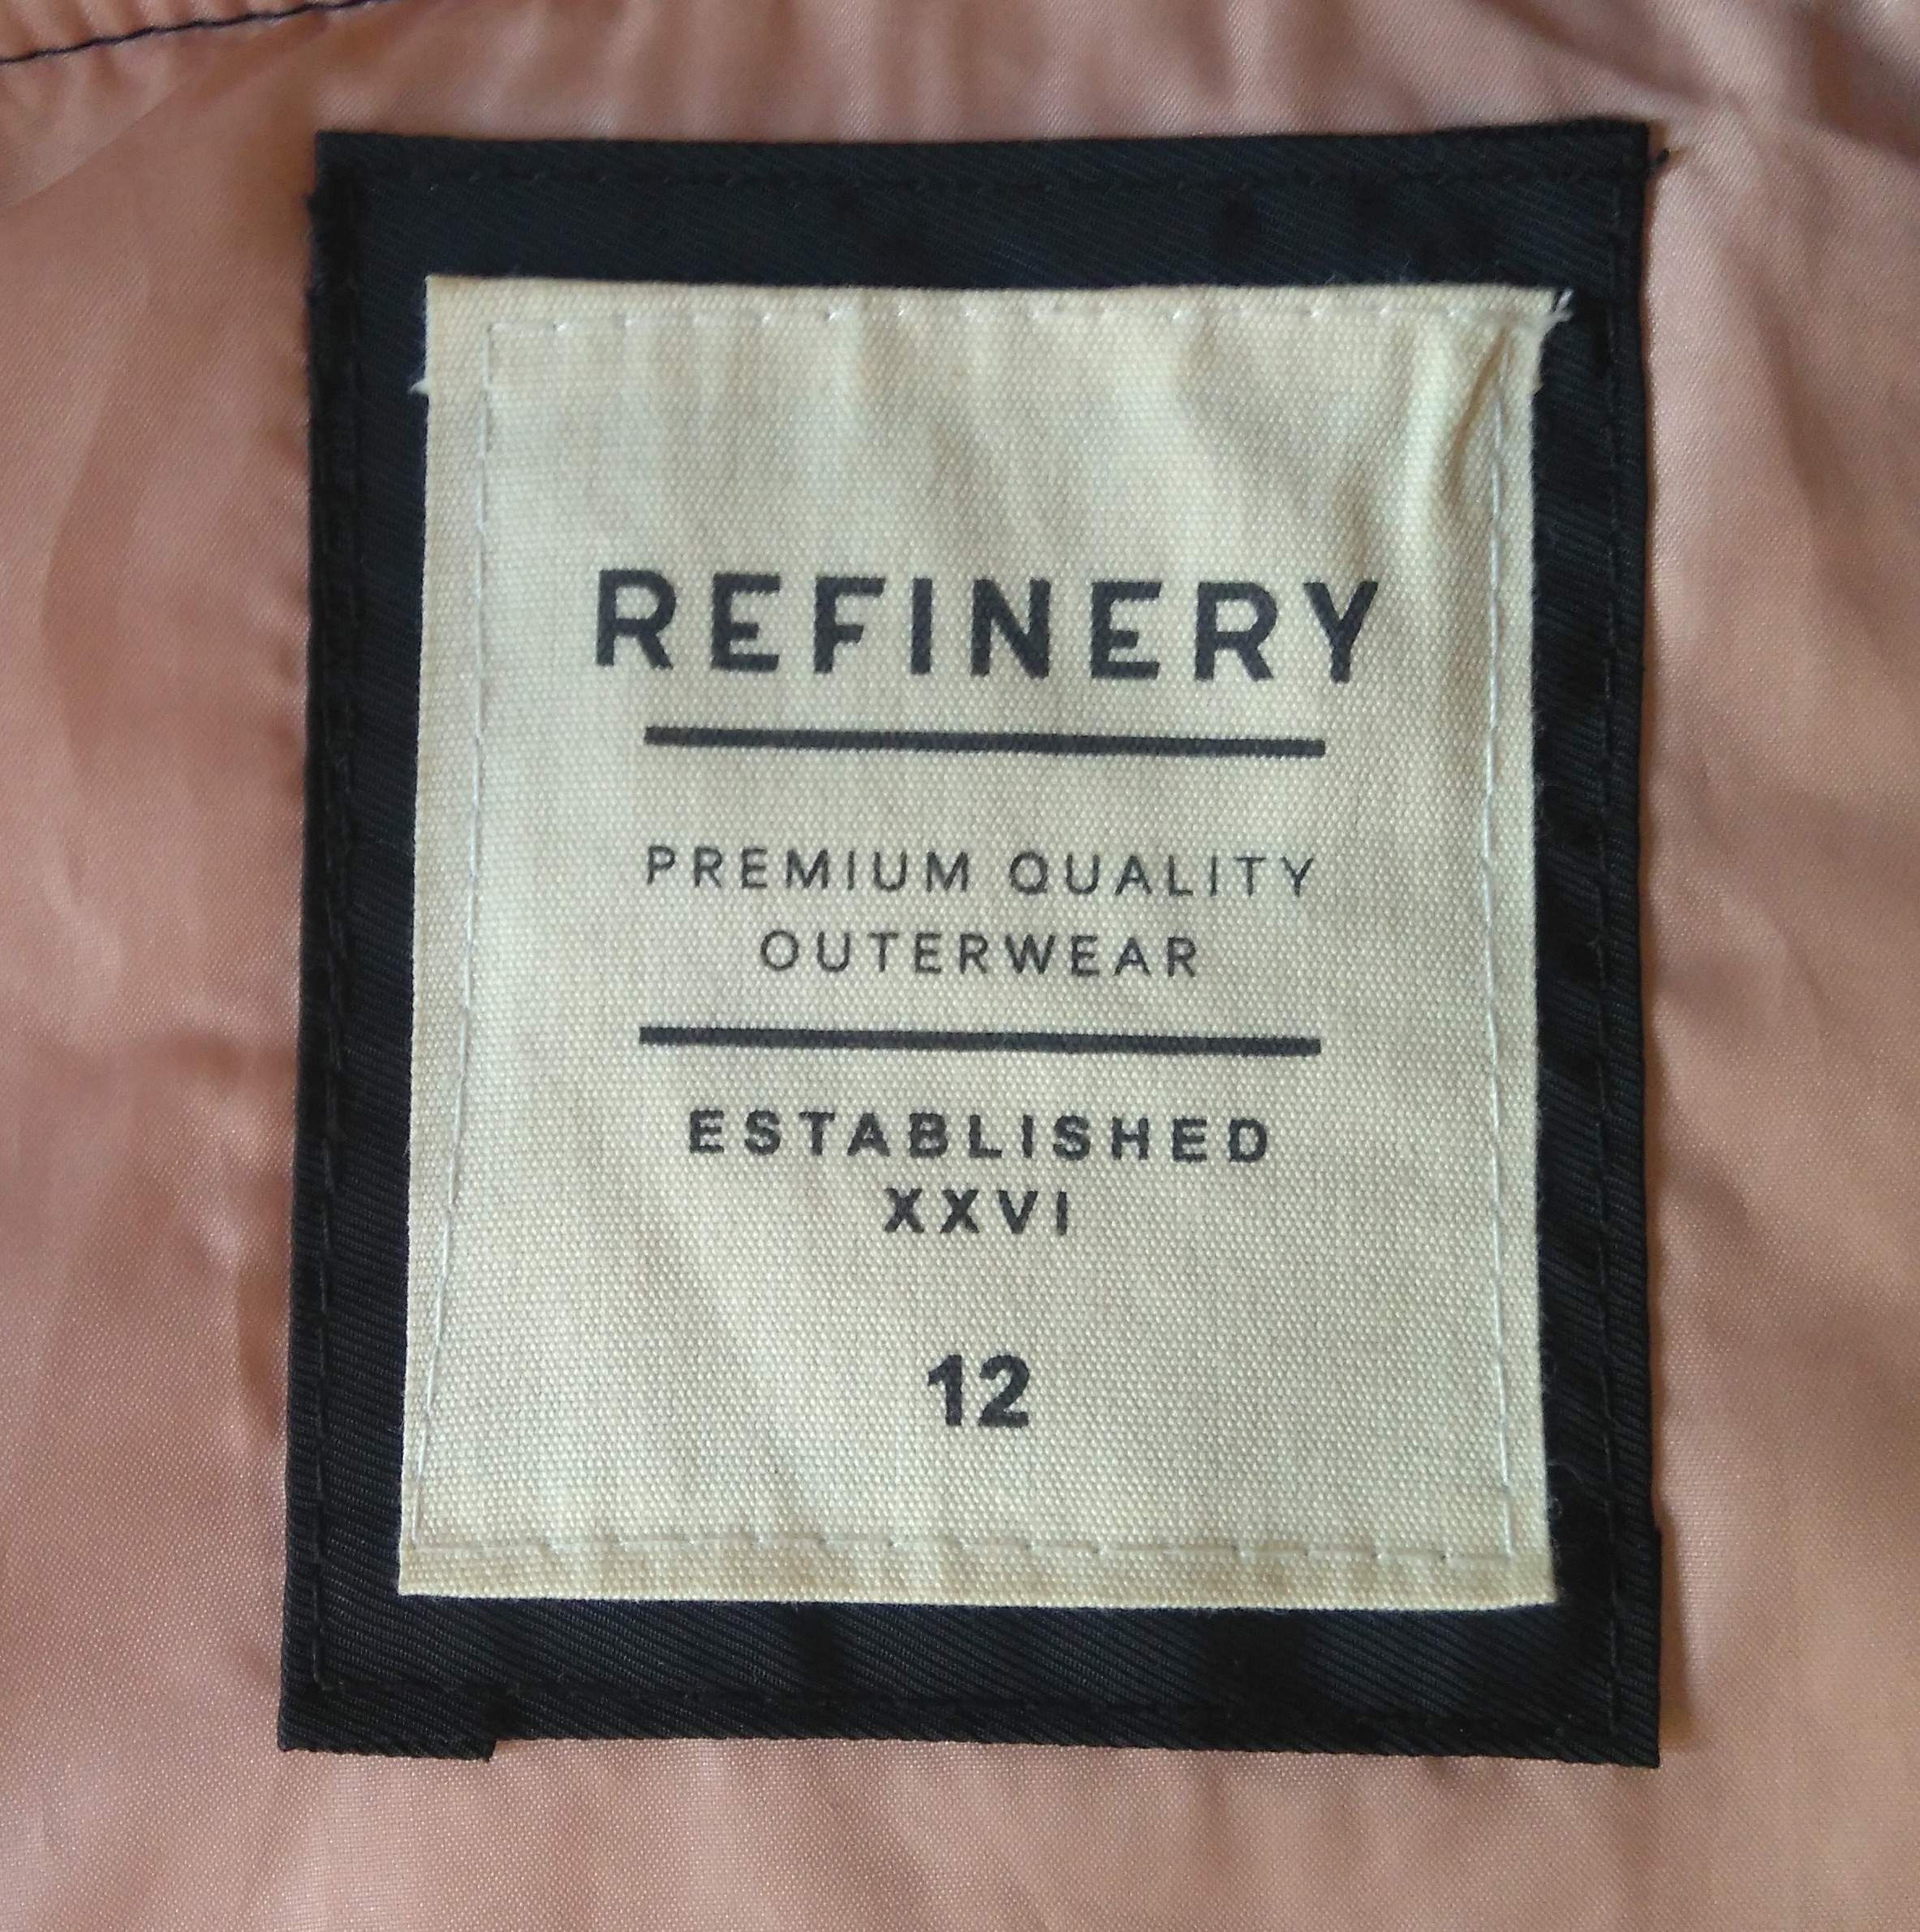 Refinery Bomber Jacket